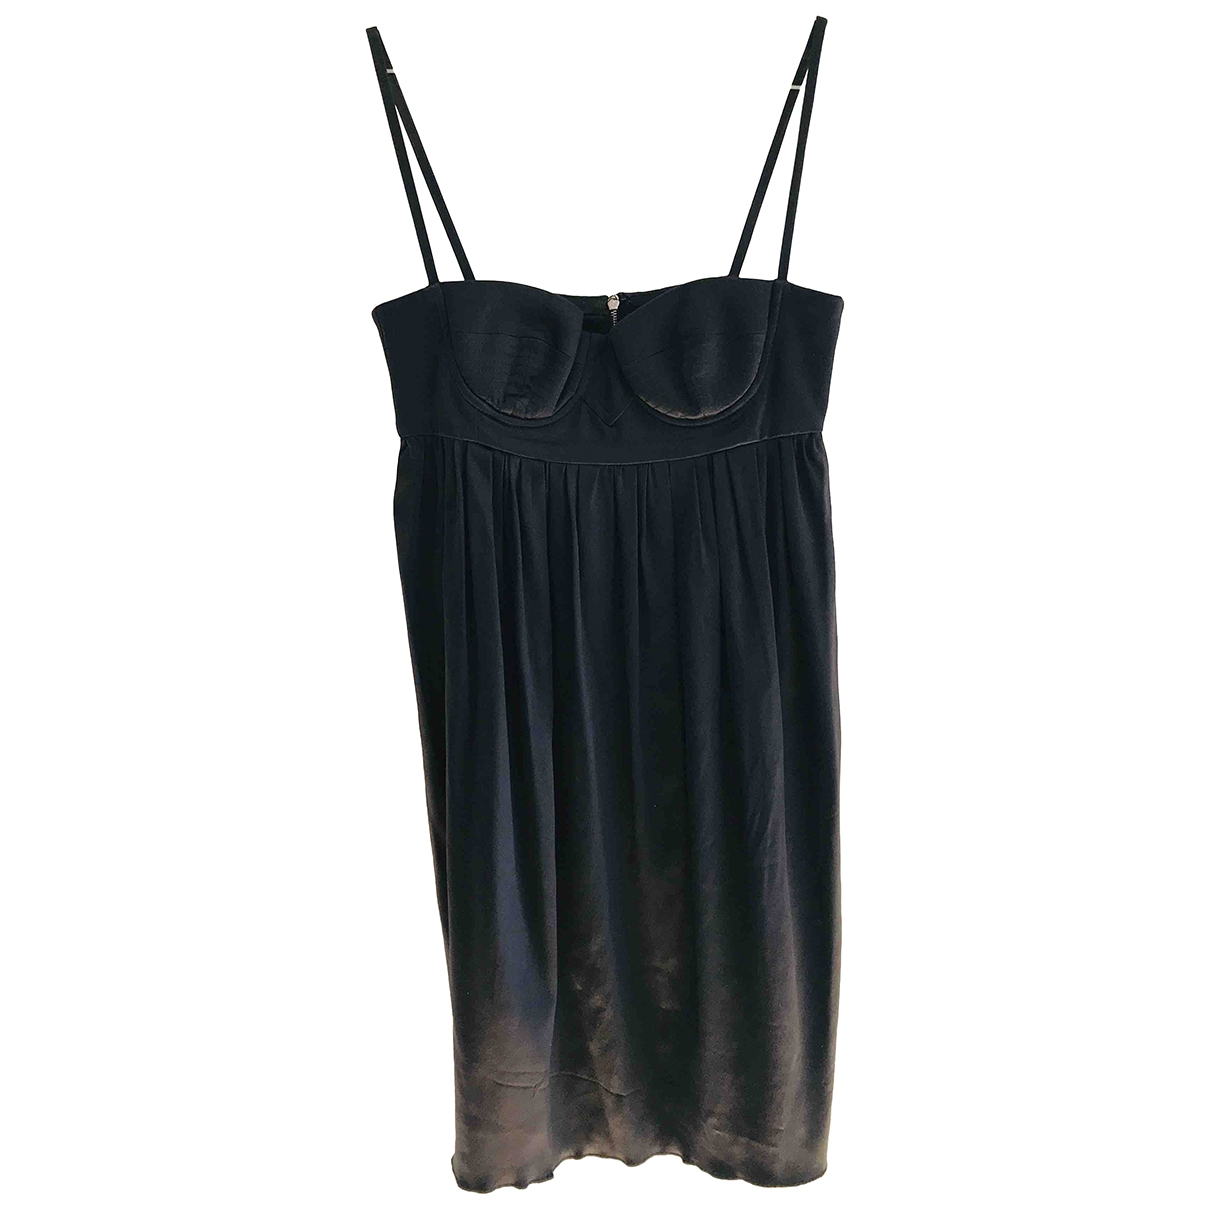 Dolce & Gabbana \N Black Silk dress for Women 38 FR